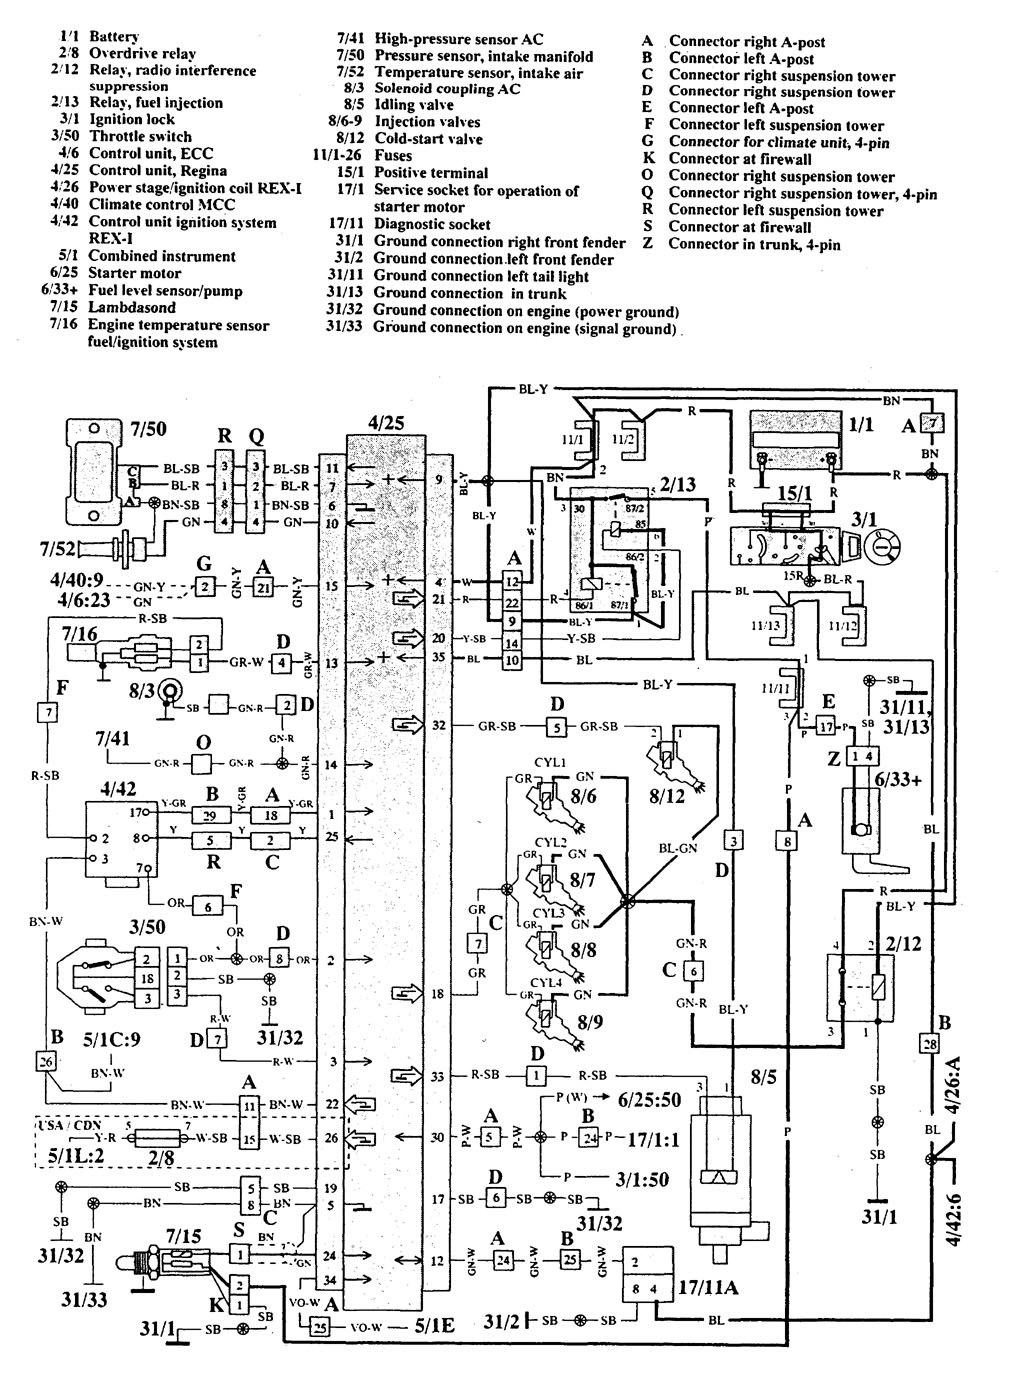 volvo 940  1992  - wiring diagrams - hvac controls